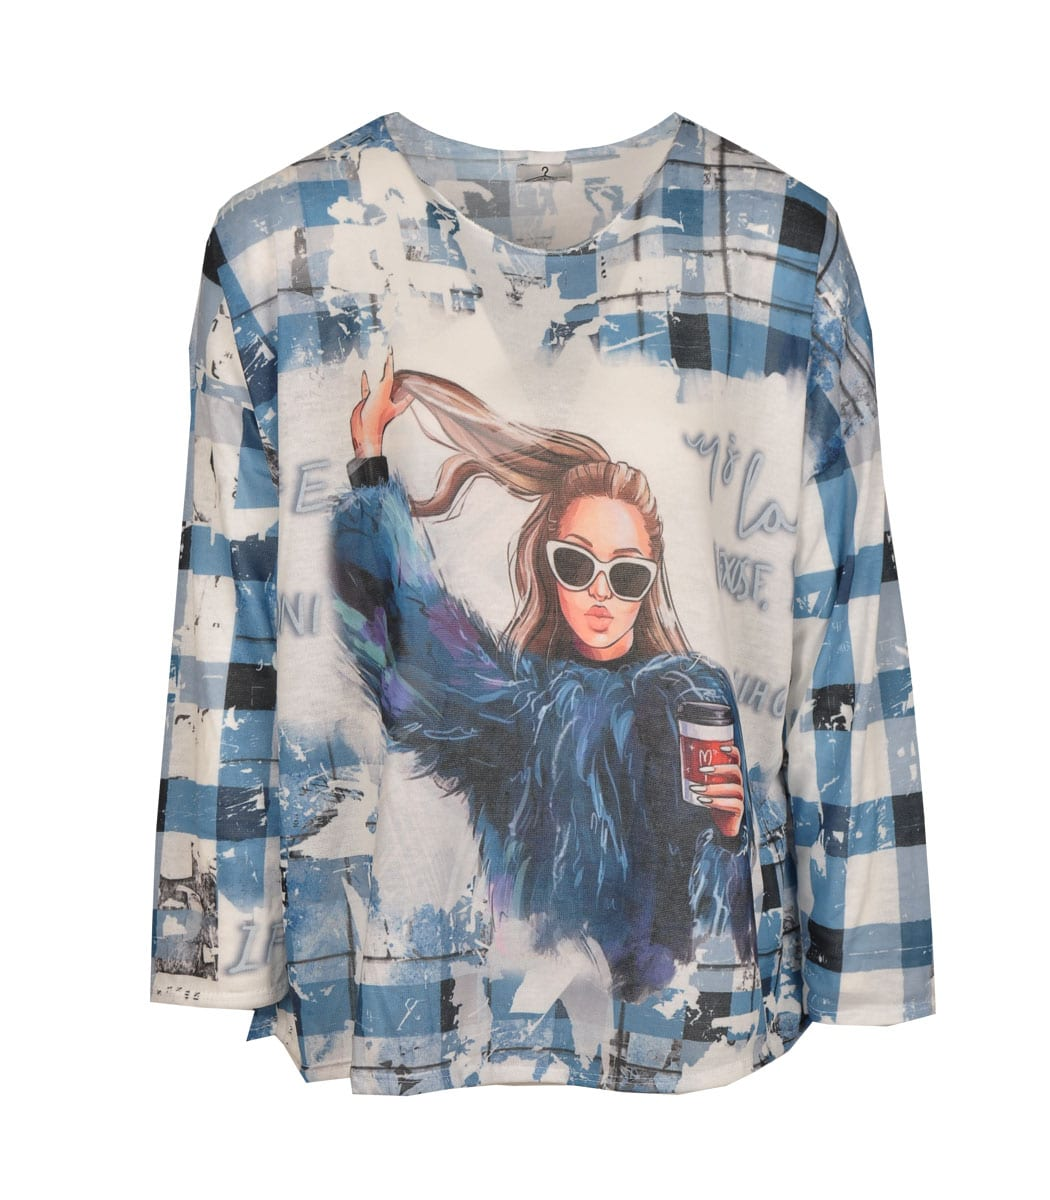 Sunglass lady long sleeve top